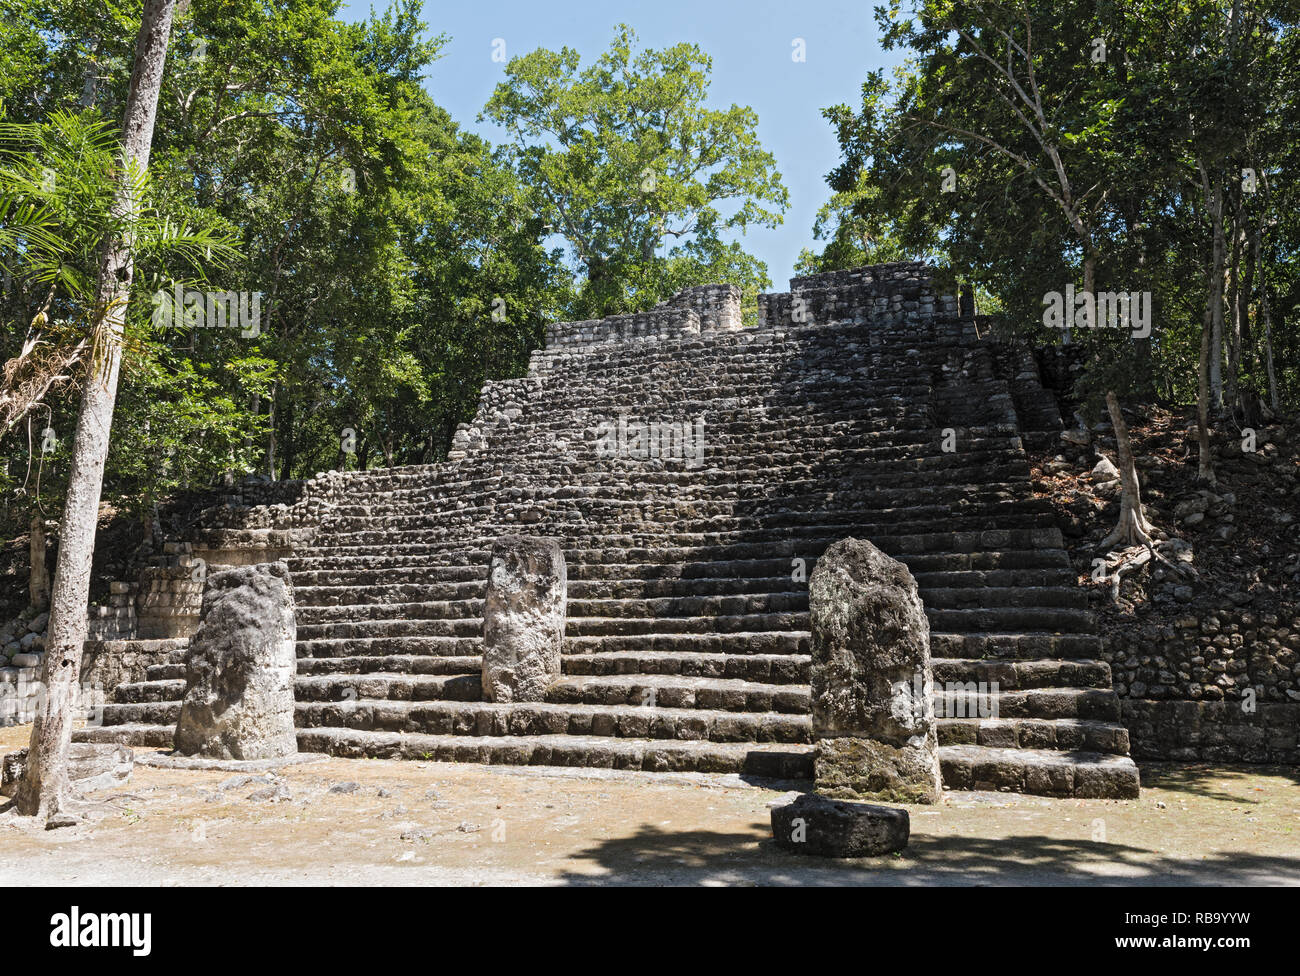 the ruins of the ancient mayan city of calakmul, campeche, mexico - Stock Image